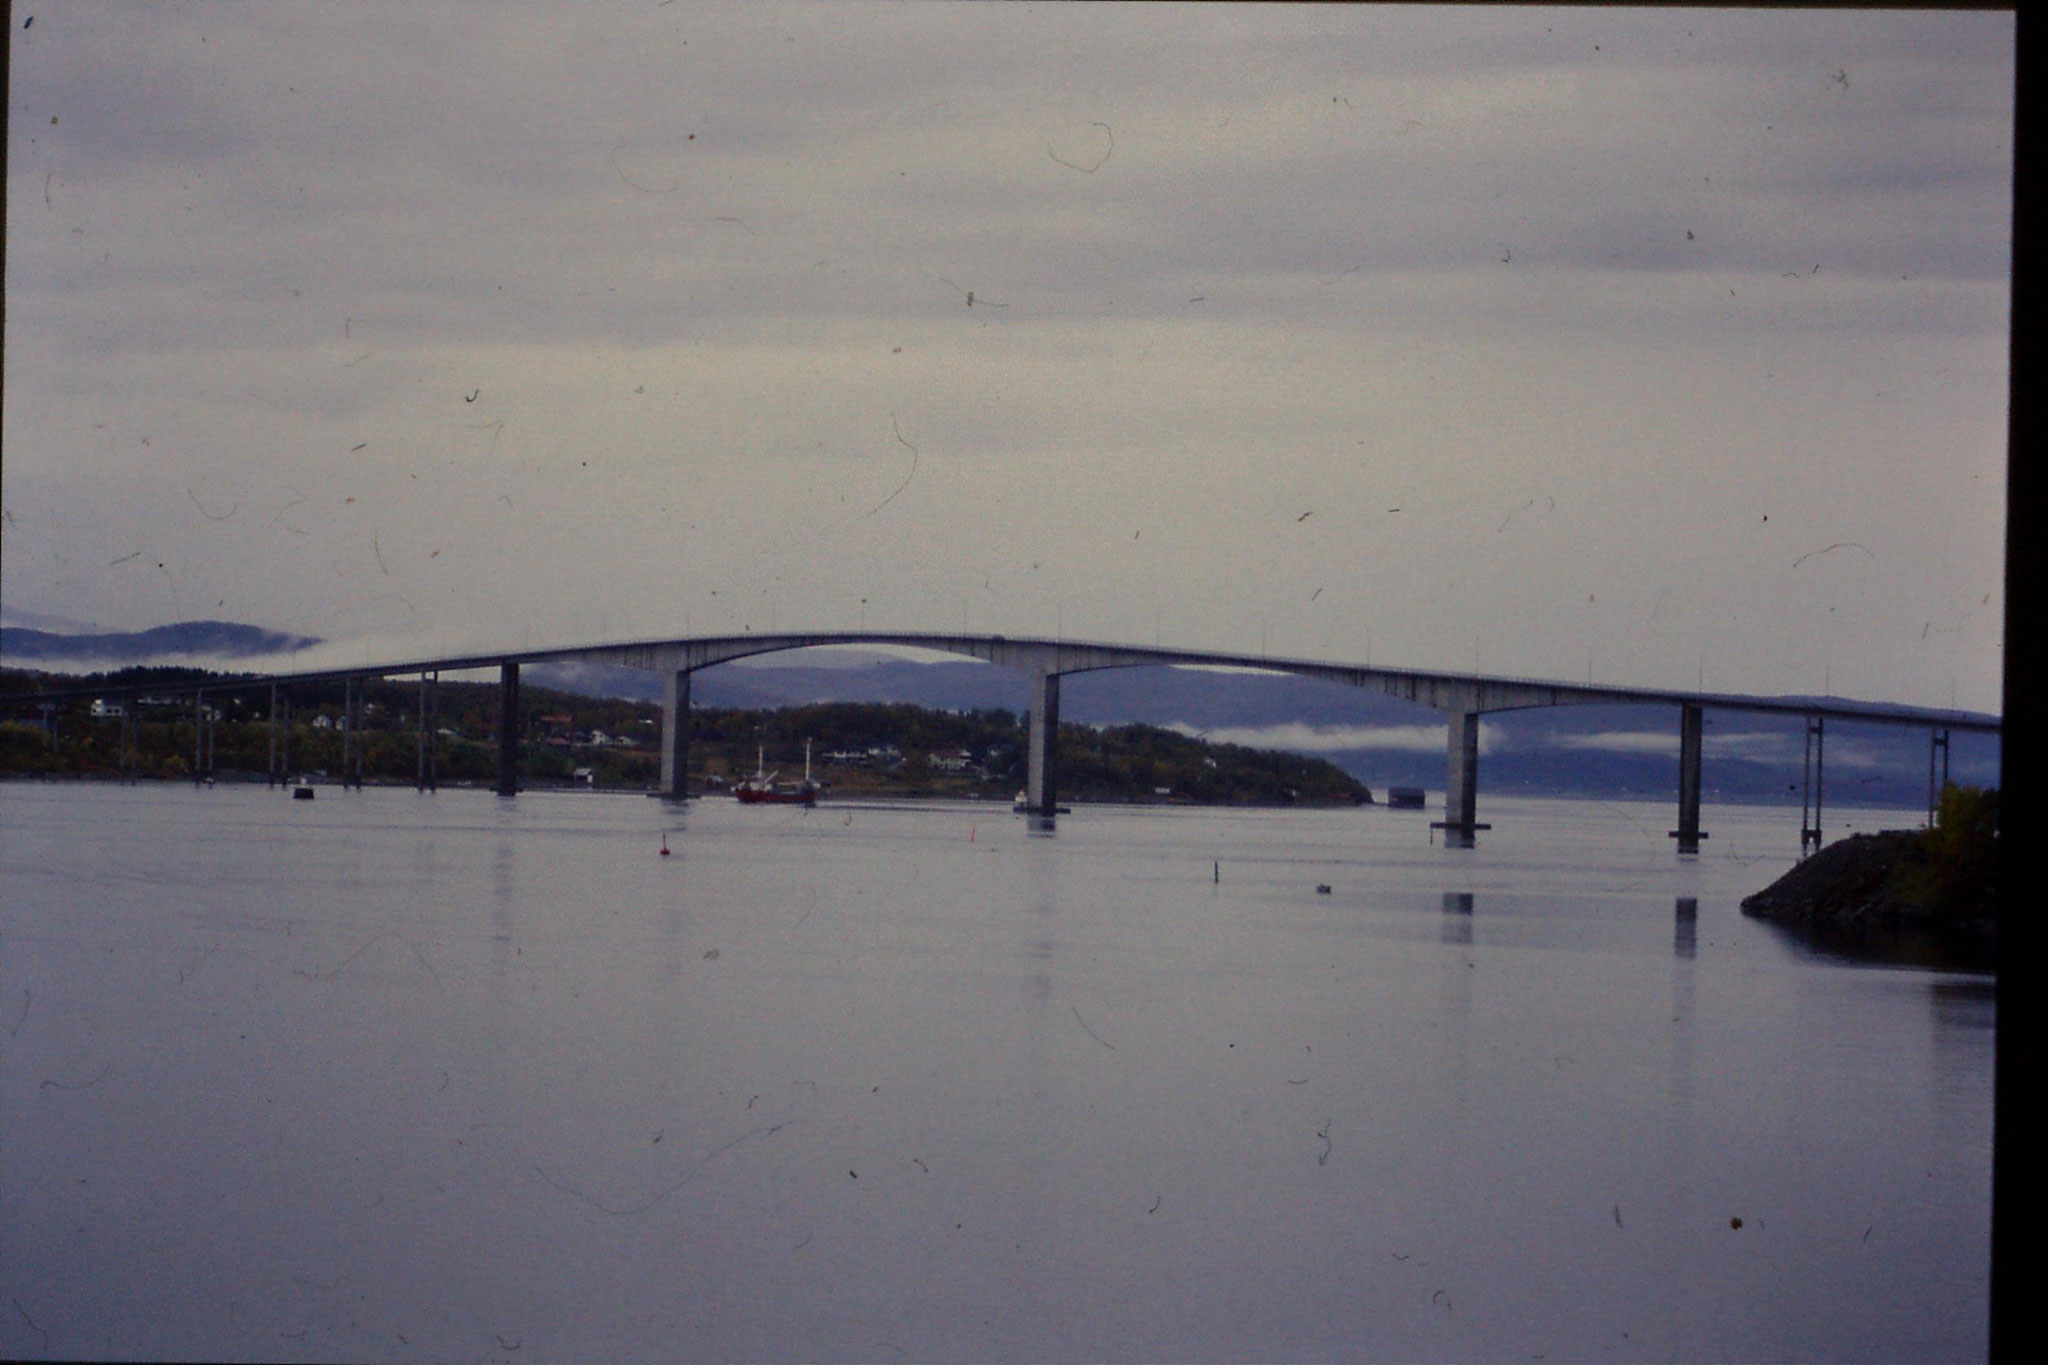 25/9/1988: 29: fishing boat going through bridge